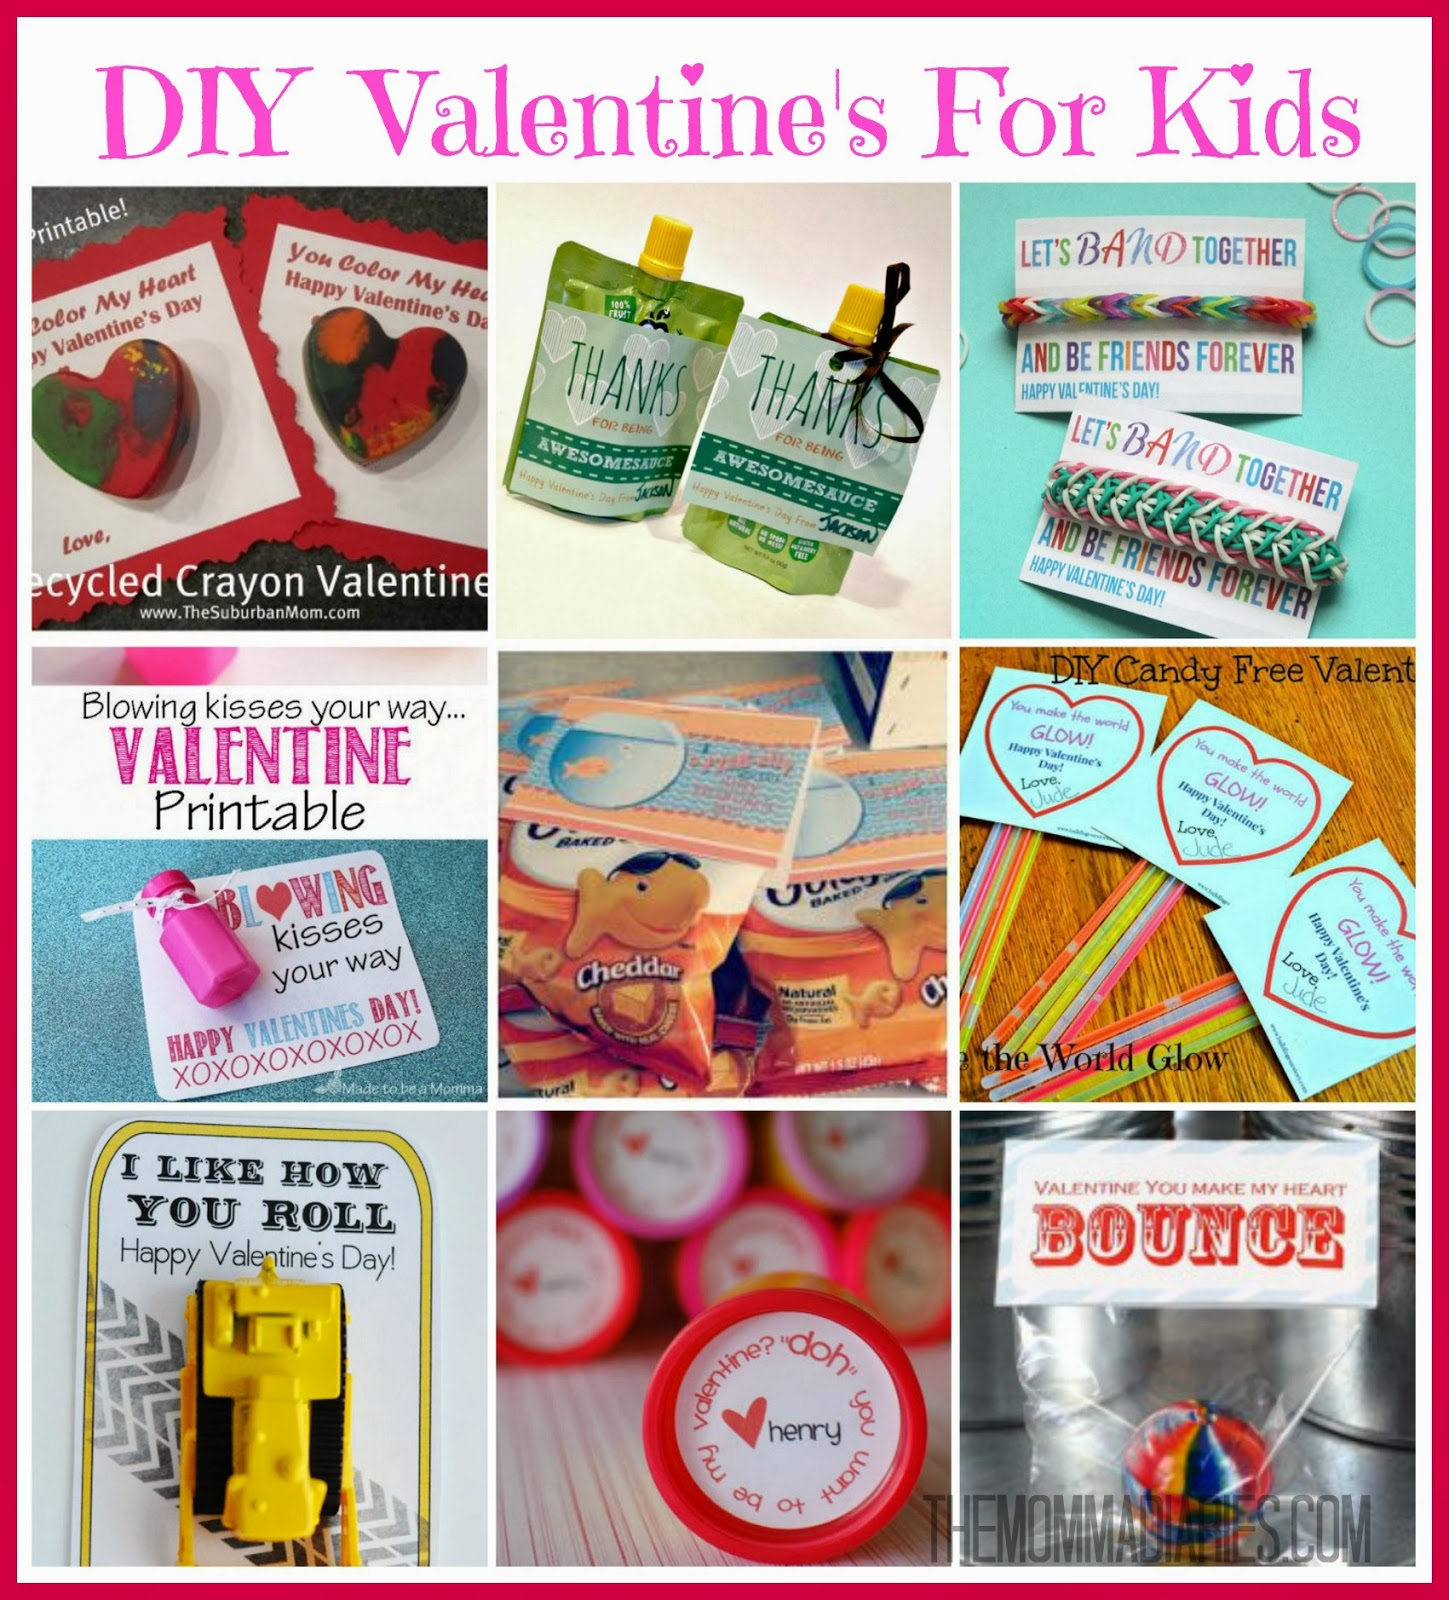 #DIY #Valentines For #Kids